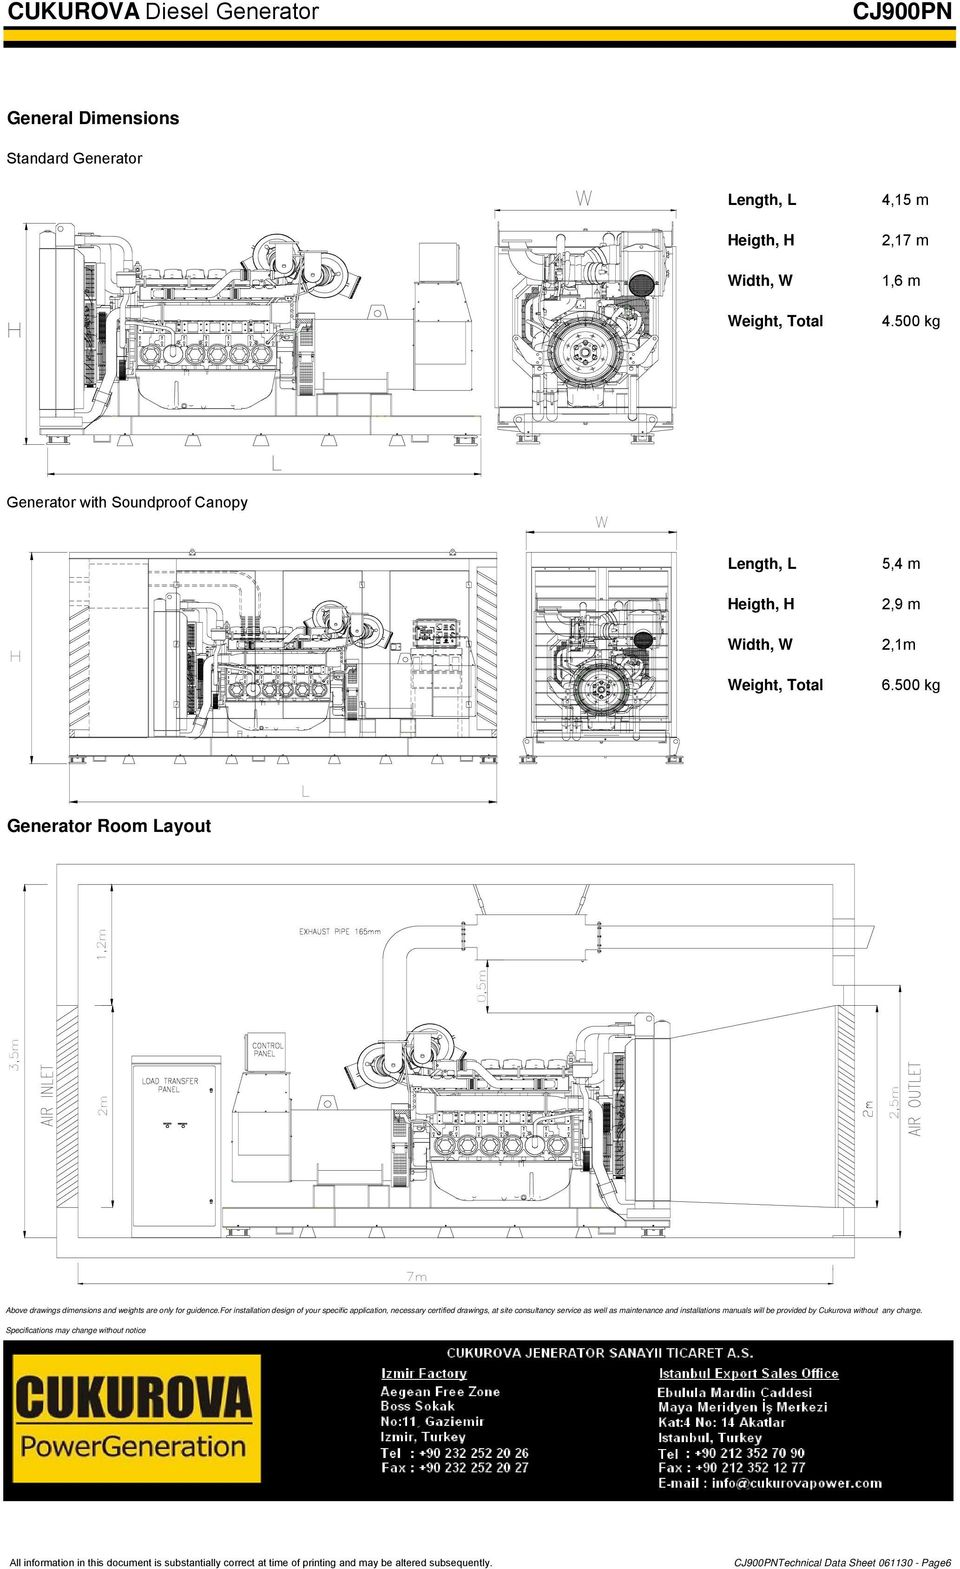 500 kg L Generator Room Layout 2m 2,5m 3,5m 0,5m 1,2m 7m Above drawings dimensions and weights are only for guidence.